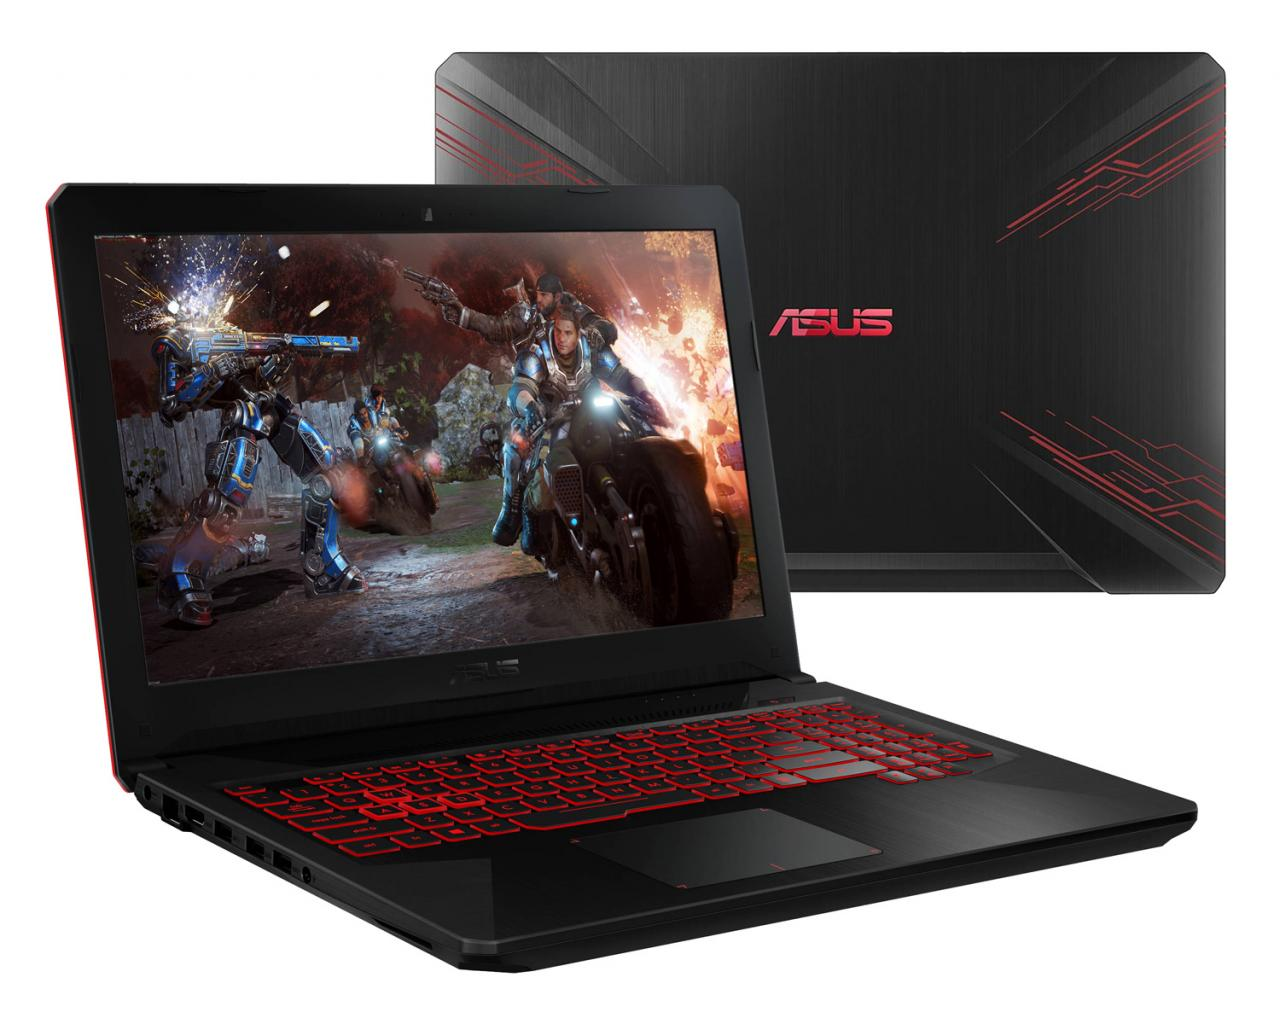 Asus TUF 504GD-DM917T Specs and Details